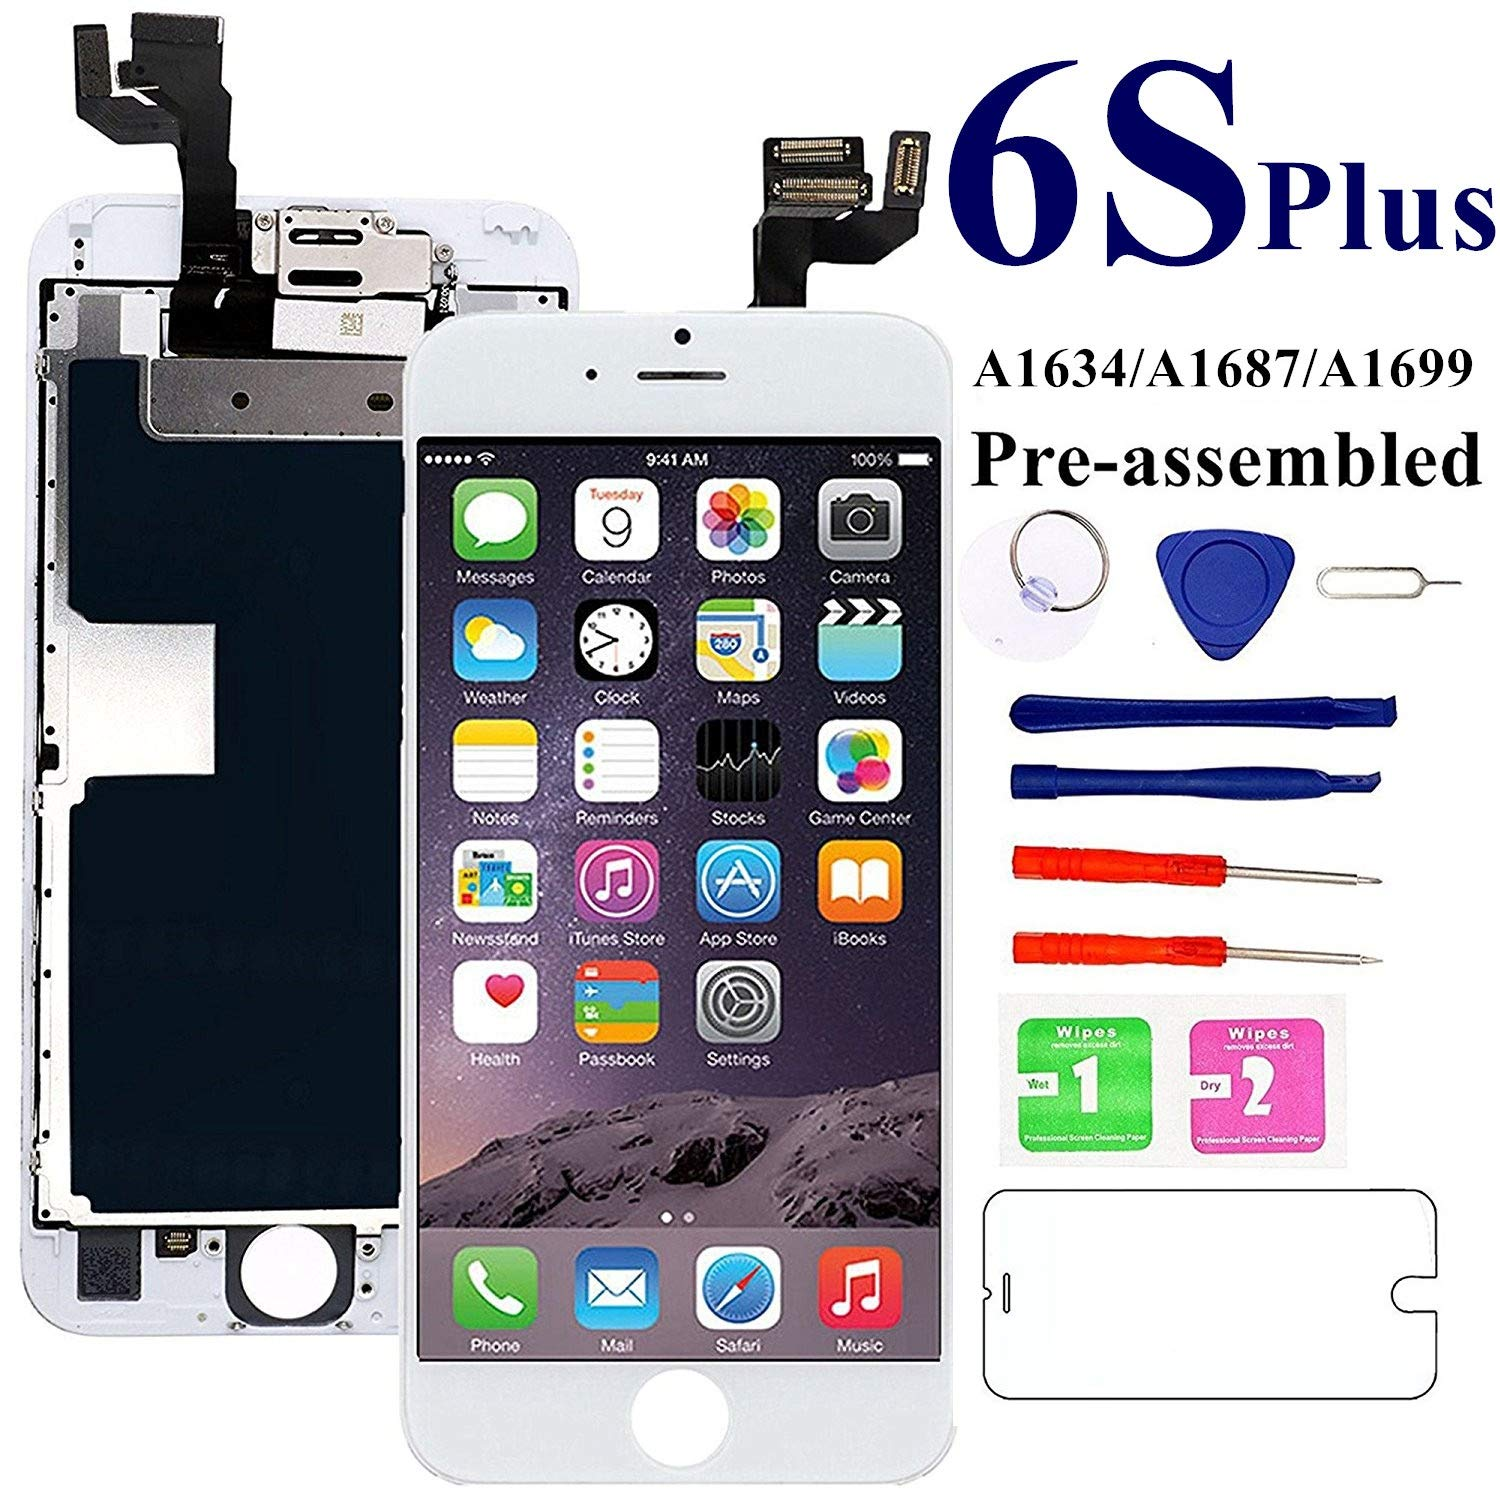 for iPhone 6S Plus Screen Replacement 5.5 inch- White, with Front Camera, Earspeaker - MAFIX Full Assembly LCD Display Digitizer 3D Touch Screen Kit with Repair Tools and Glass Protector